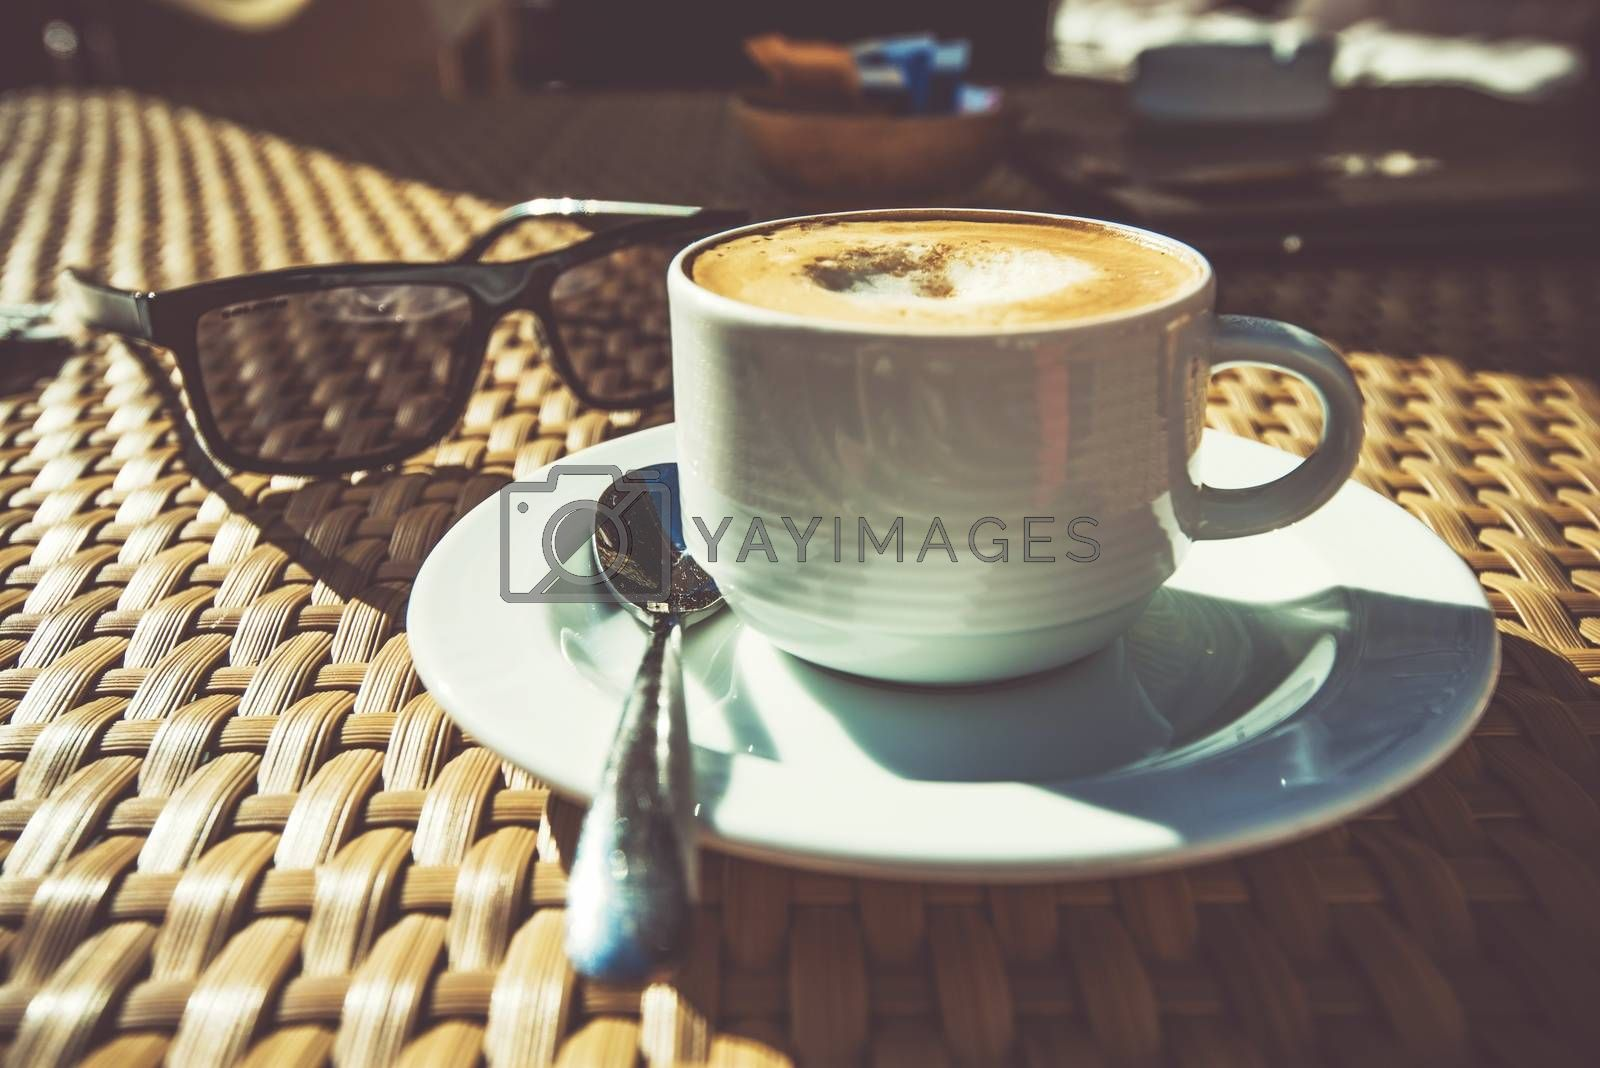 Royalty free image of Summer Time Cappuccino by welcomia